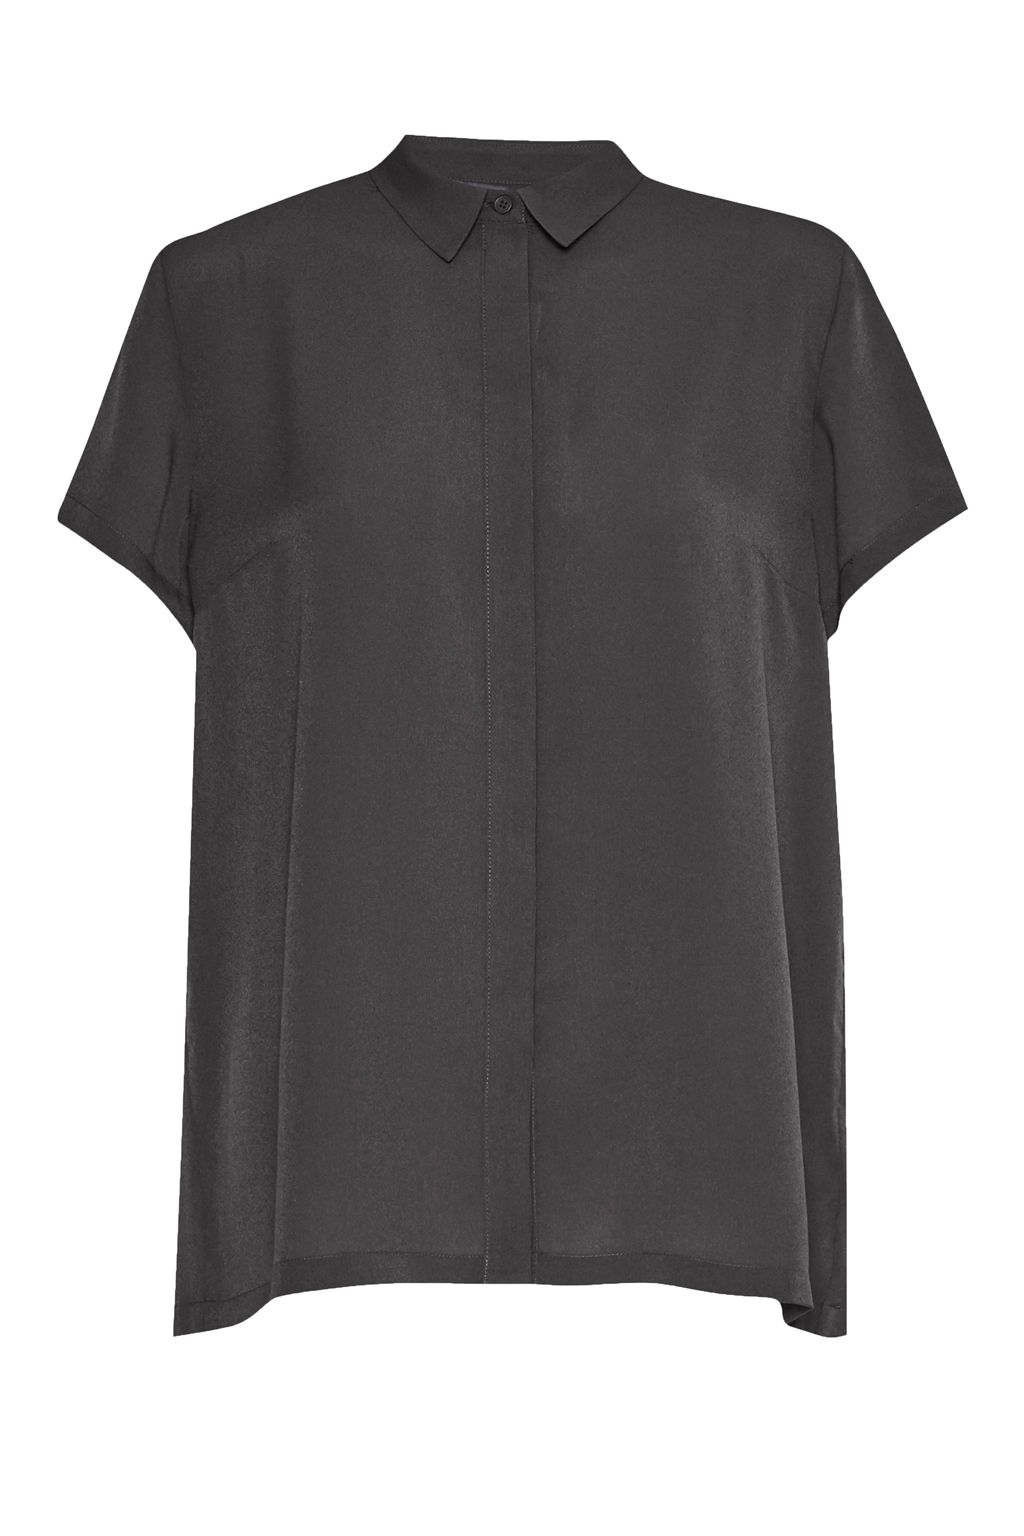 French Connection Classic Crepe Short Sleeve Shirt, Charcoal